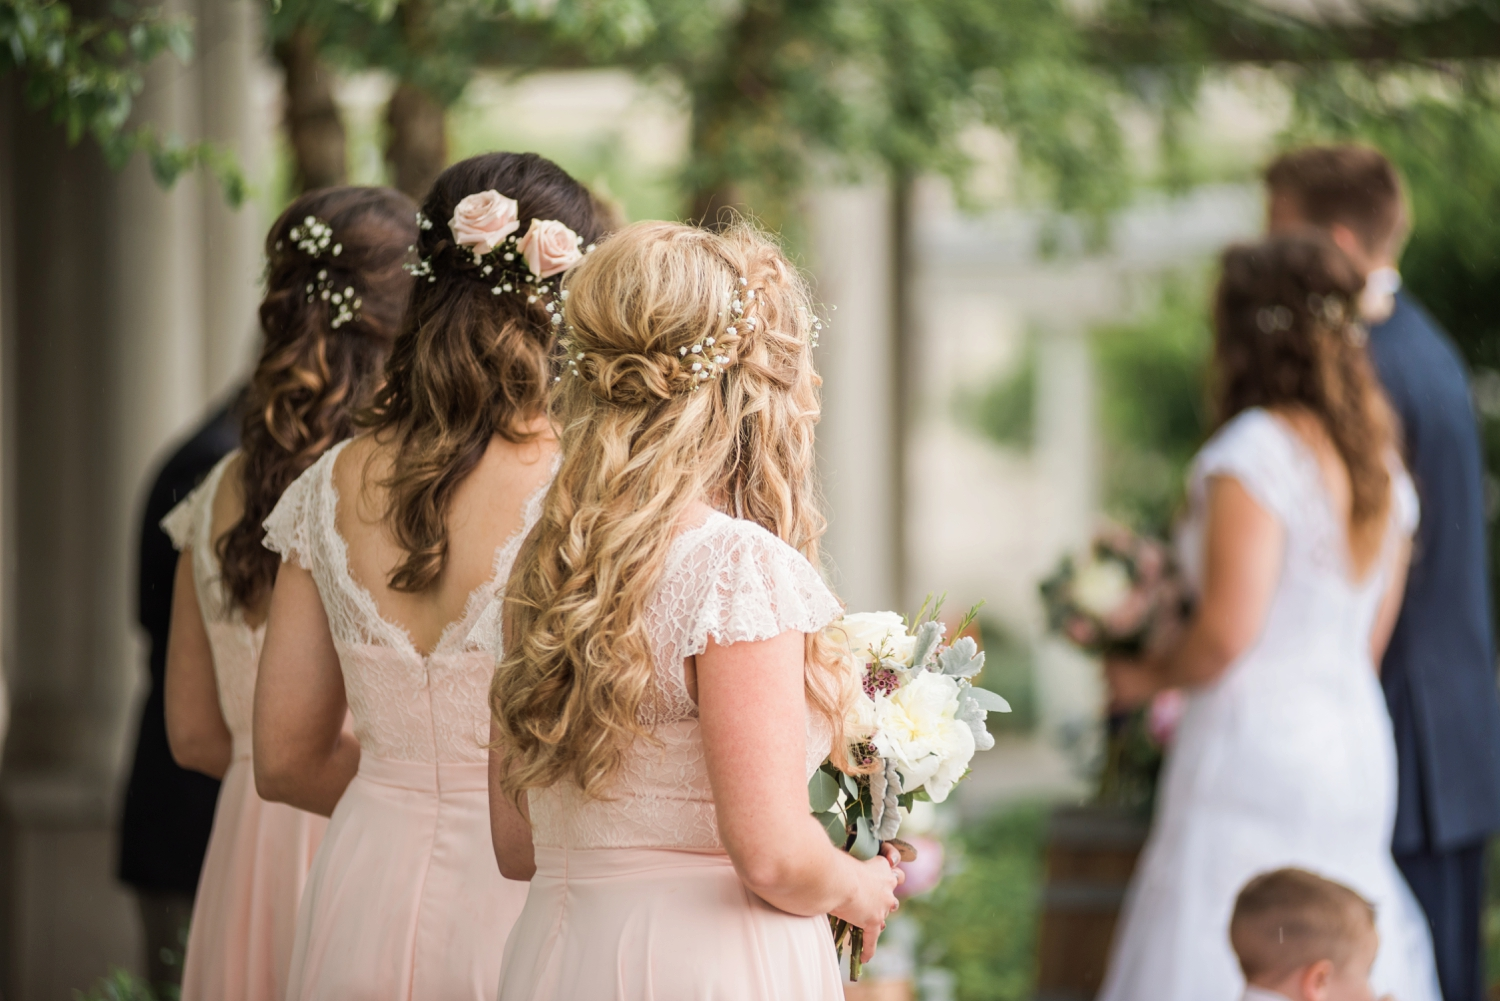 Community_Life_Center_Indianapolis_Indiana_Wedding_Photographer_Chloe_Luka_Photography_6957.jpg